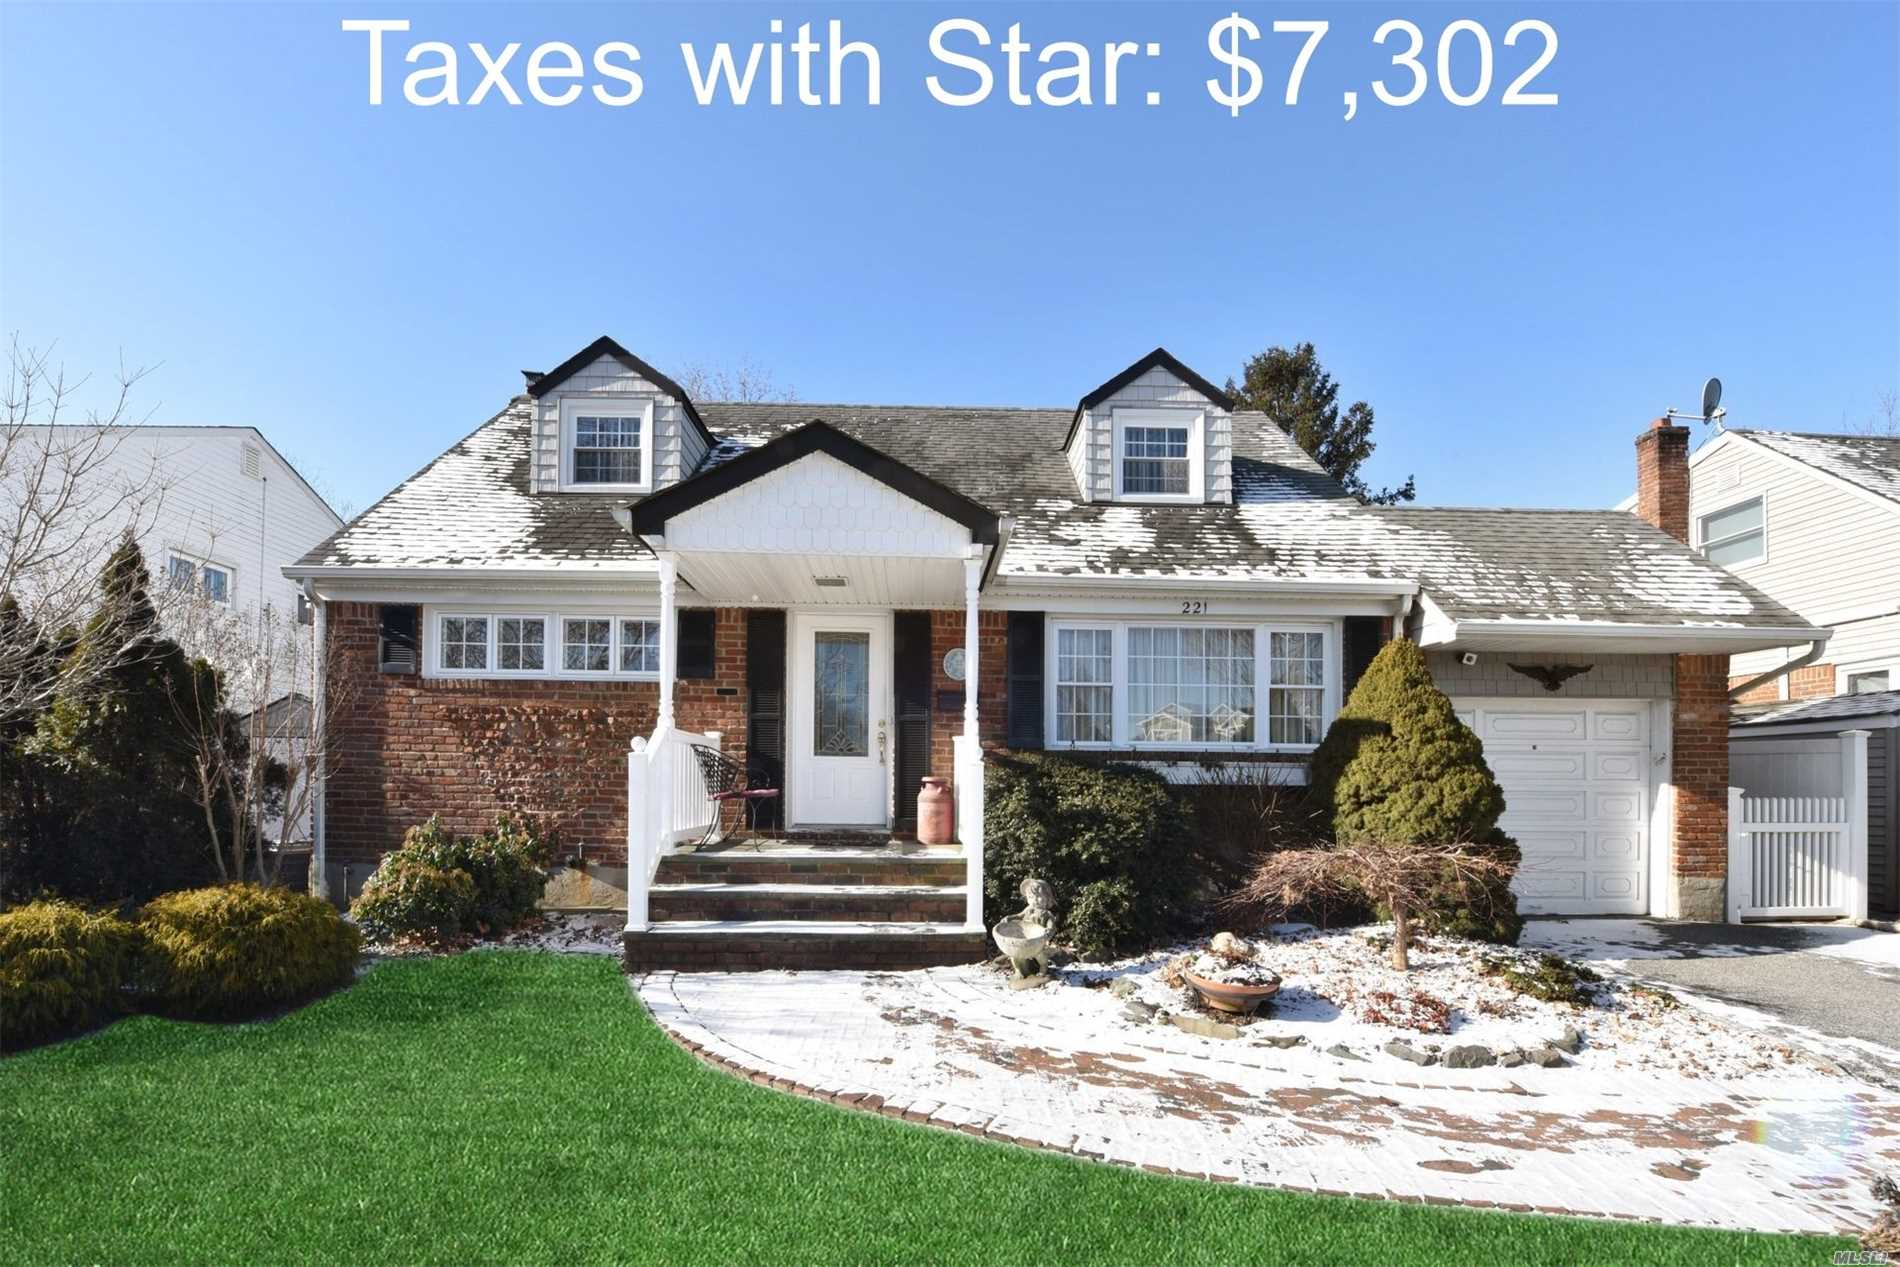 This Charming Updated Home In Midblock Loc.On Lush Prof.Landscpd Park Like Property Features Country Club Back Yard, Updt Granite Eik, Updt Bths With Marble, Granite , Porcelain, Picturesque Heated Fla. Room, Arch.Roof, Cac, Ugs, 150 Amp, Koi Pond, Hardwd On Main Level.Too Much To Mention A Must See.Taxes With *$7302!! Price Improvement!!